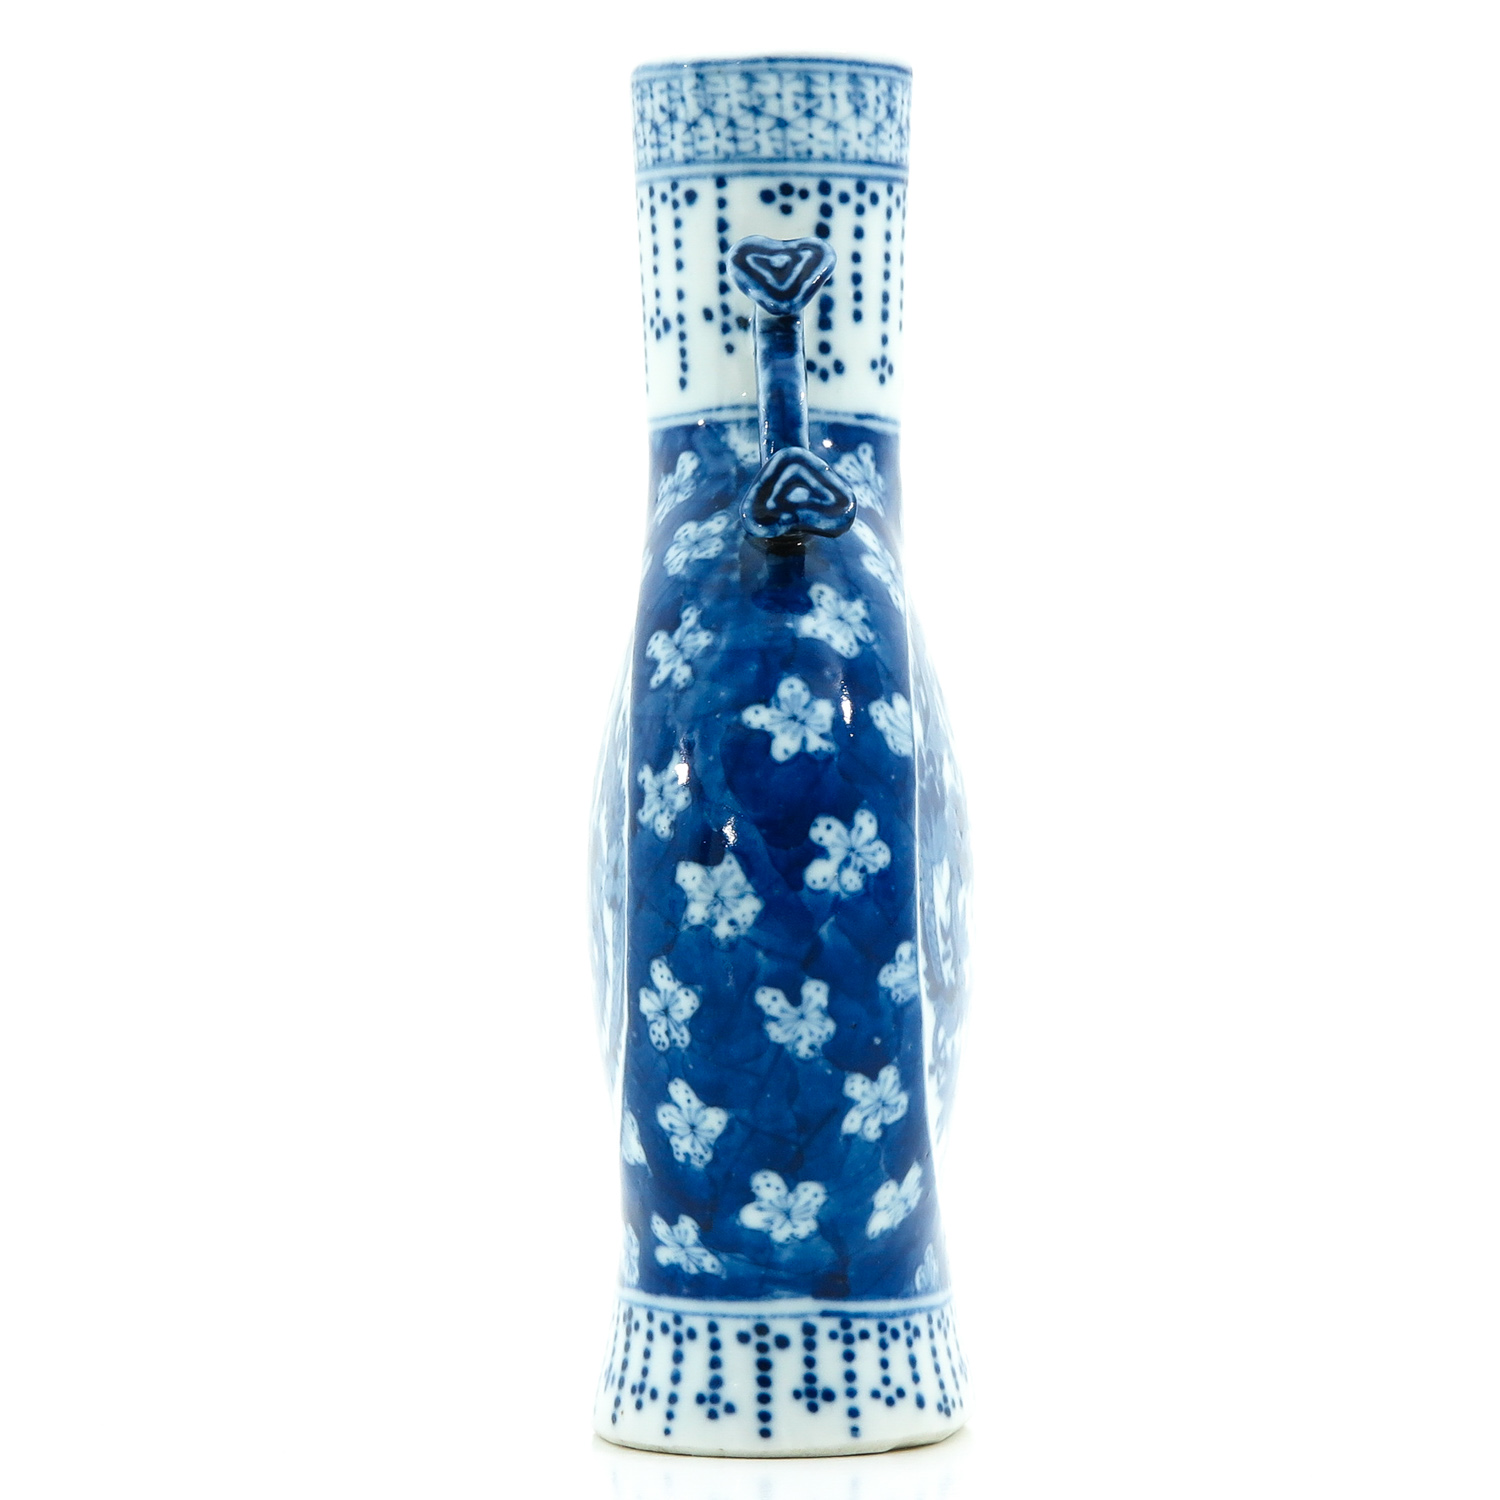 A Blue and White Moon Bottle - Image 2 of 10